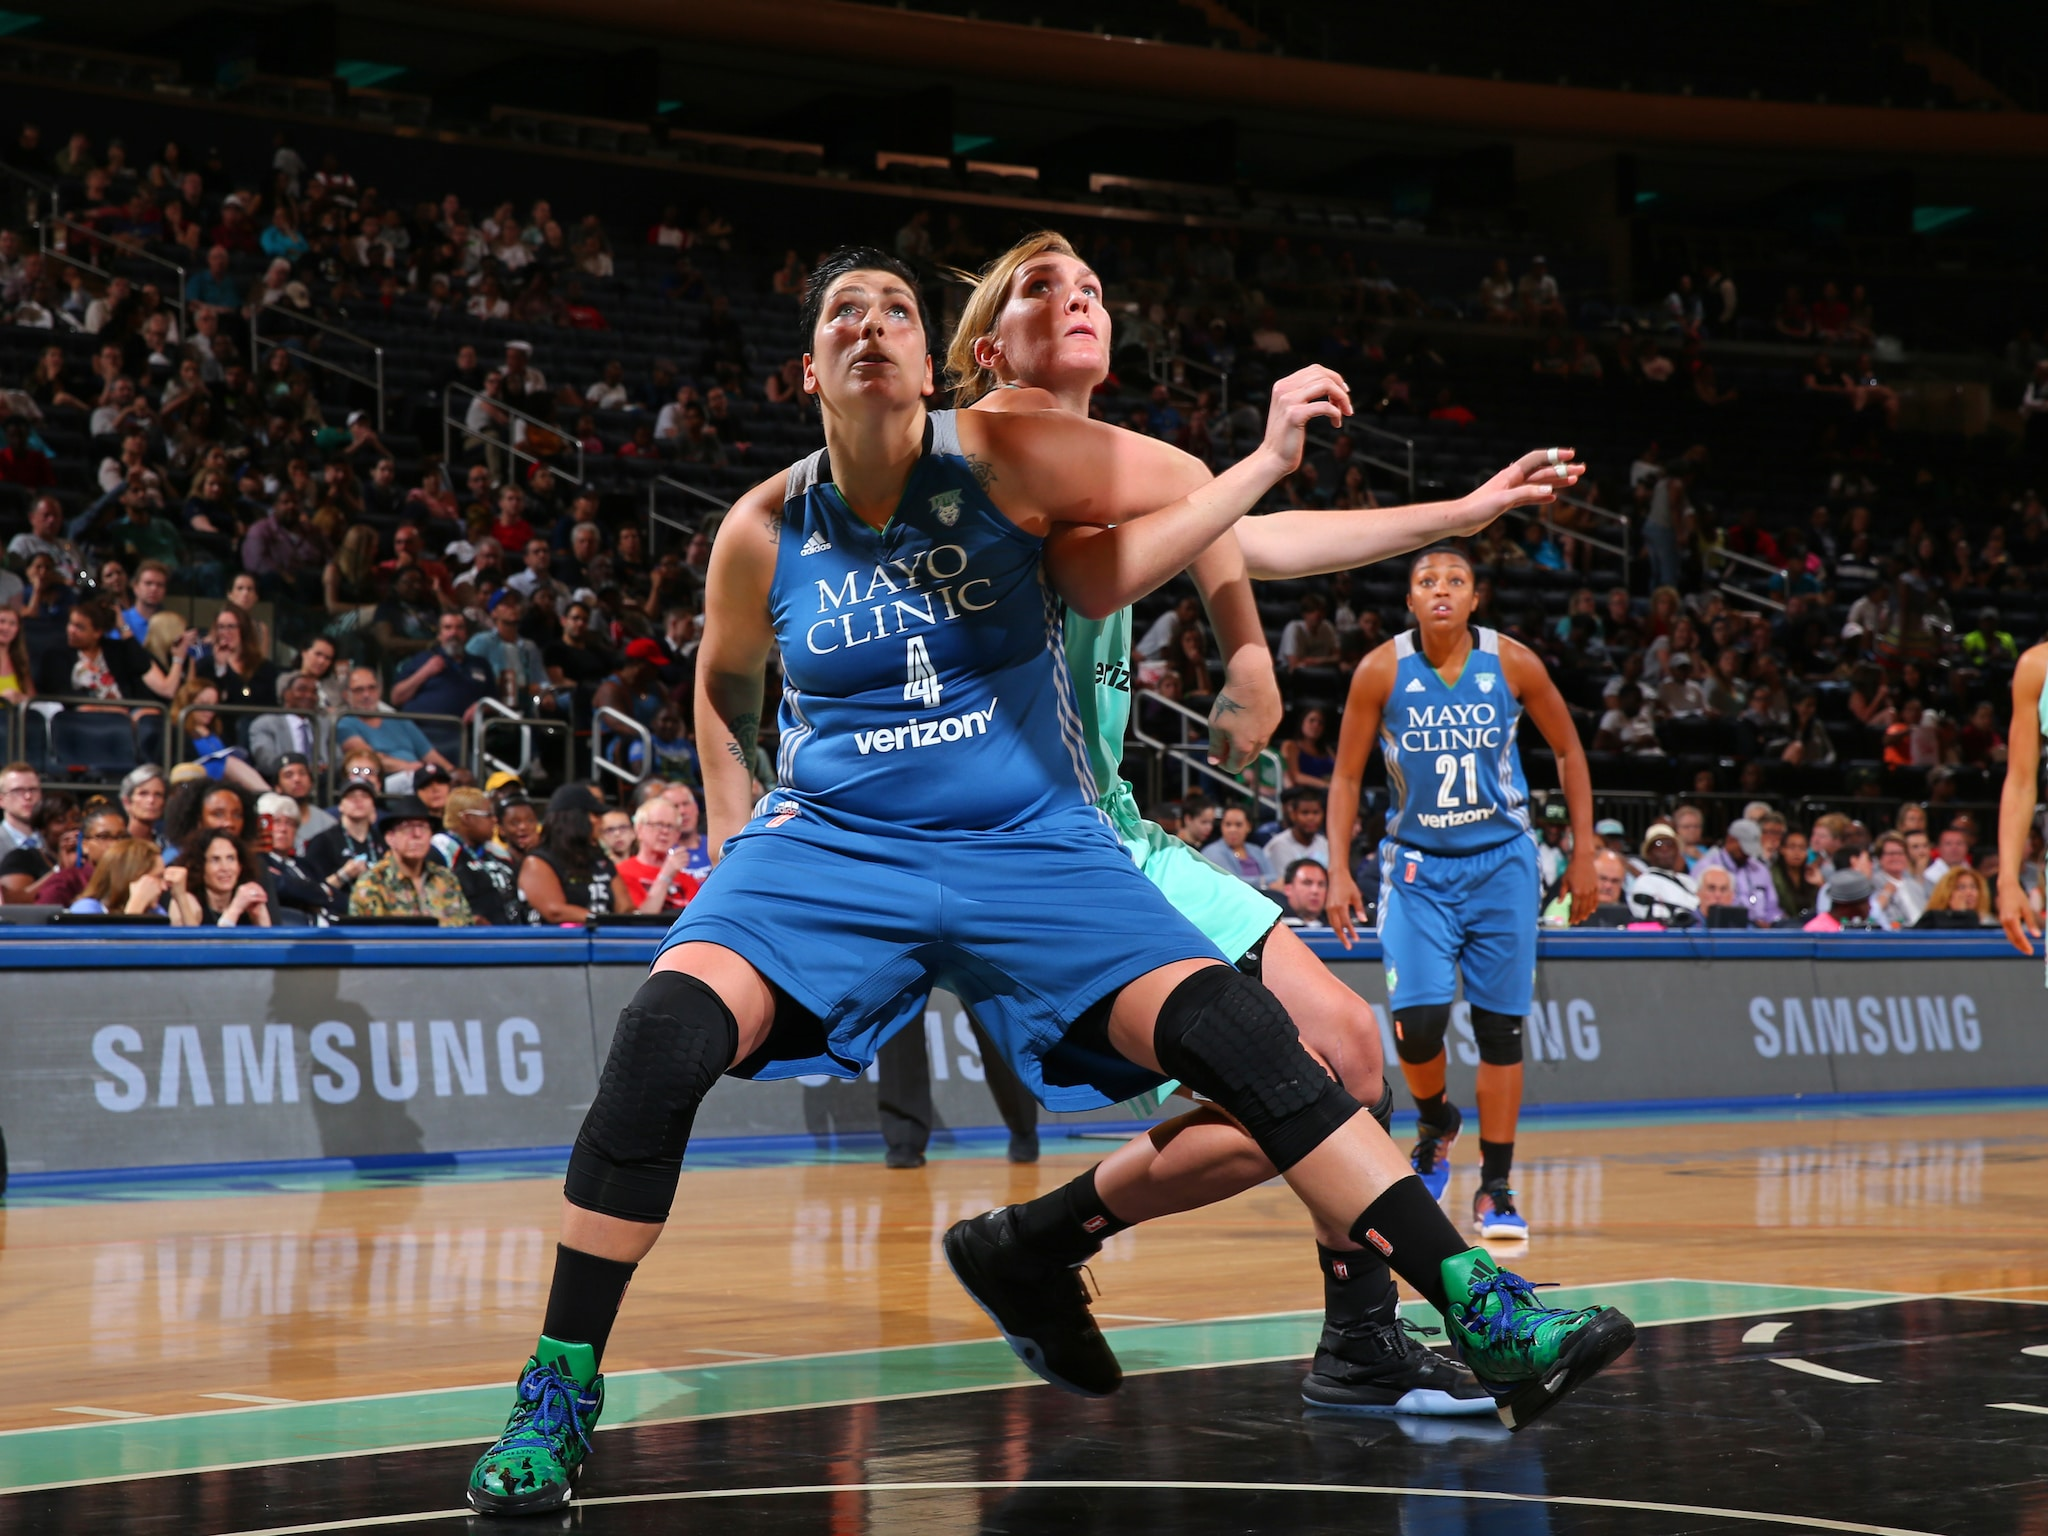 NEW YORK, NY - MAY 31:  Janel McCarville #4 of the Minnesota Lynx fights for position against Carolyn Swords #8 of the New York Liberty during the game on May 31, 2016 at Madison Square Garden in New York, New York. NOTE TO USER: User expressly acknowledges and agrees that, by downloading and or using this Photograph, user is consenting to the terms and conditions of the Getty Images License Agreement. Mandatory Copyright Notice: Copyright 2016 NBAE (Photo by Mike Stobe/NBAE via Getty Images)